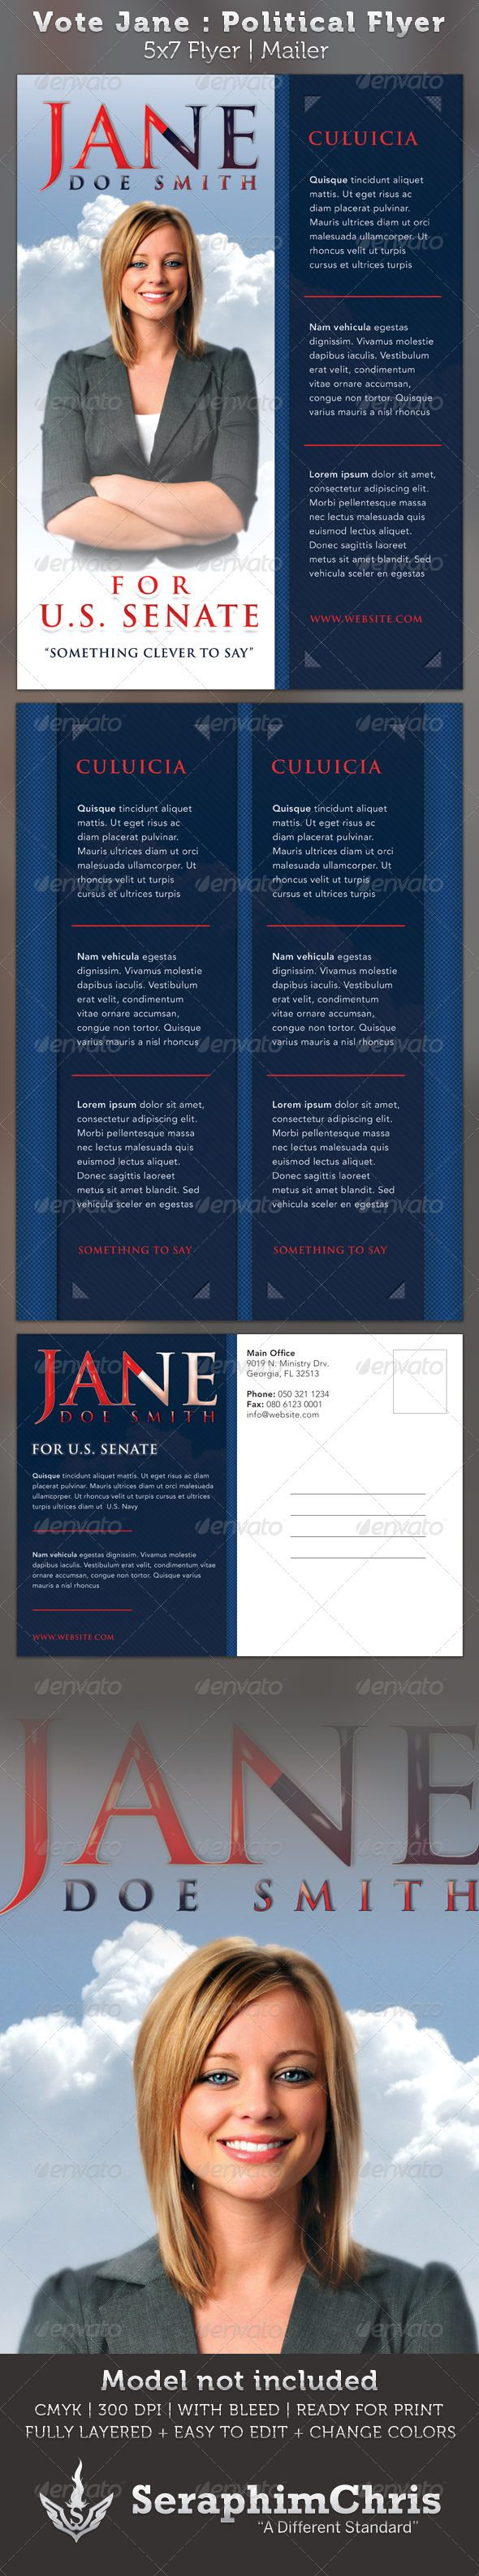 Vote jane 5x7 political flyer mailer template colors for Voting flyer templates free